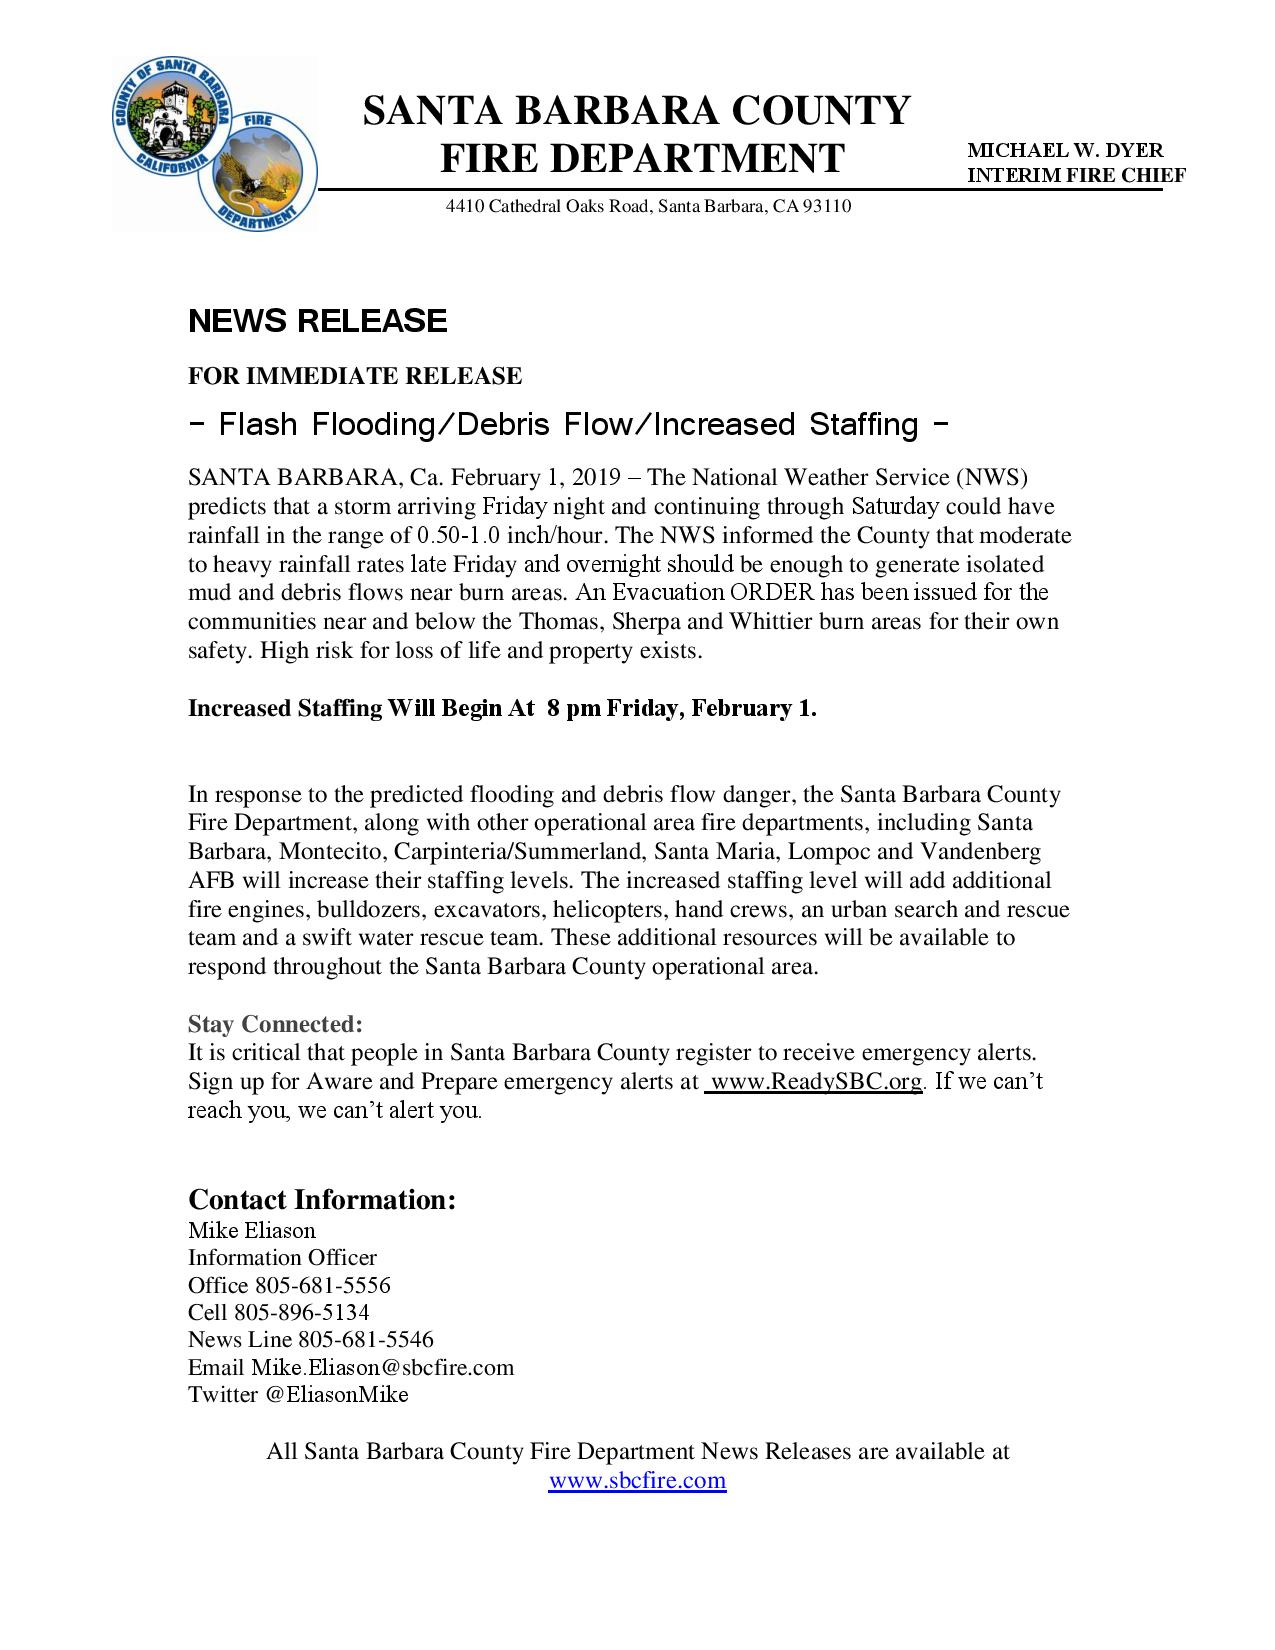 Flash Flooding/Debris Flow/Increased Staffing